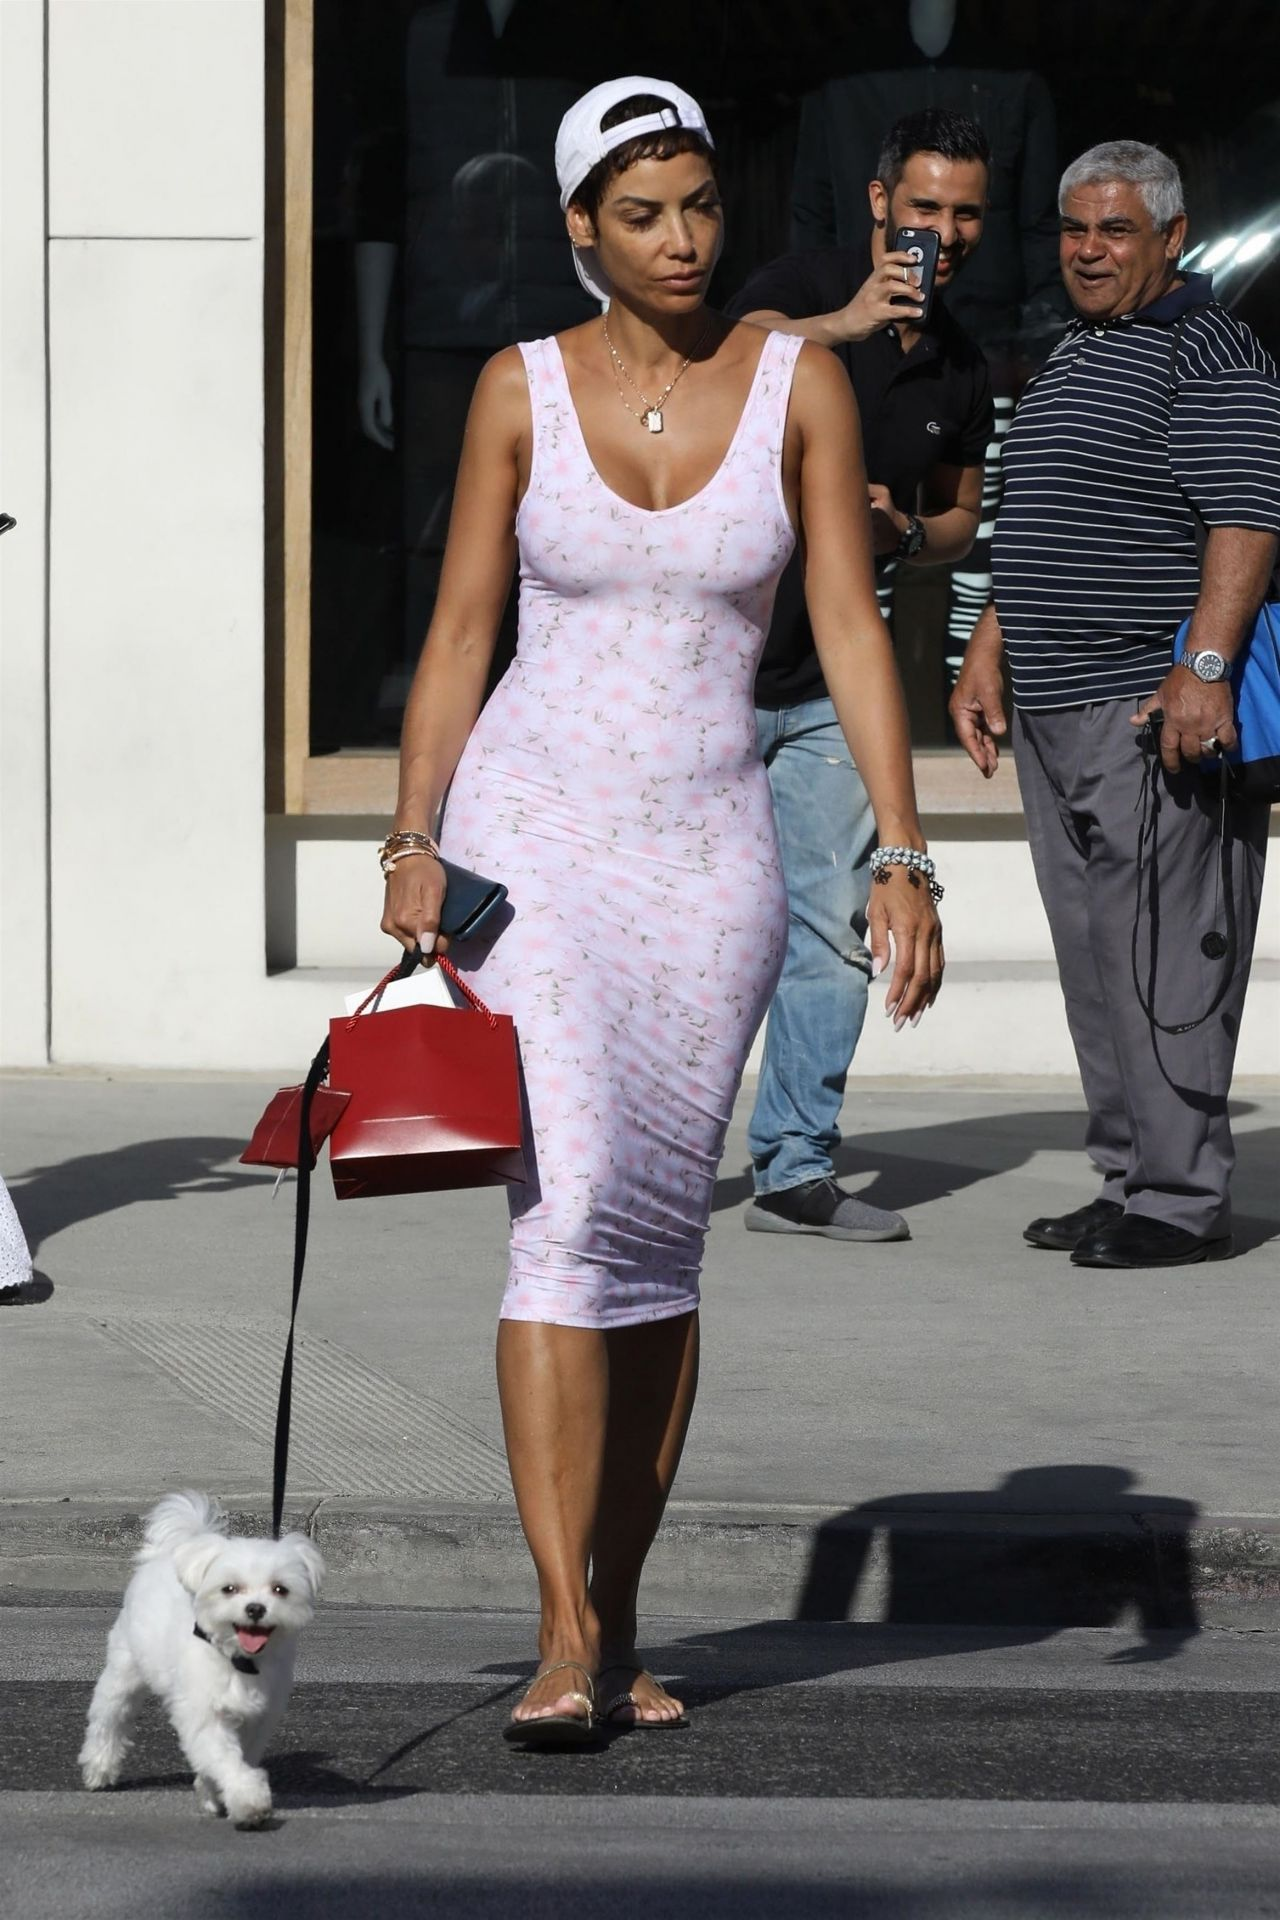 Nicole Murphy In A Form Fitting Pink Dress Shopping In